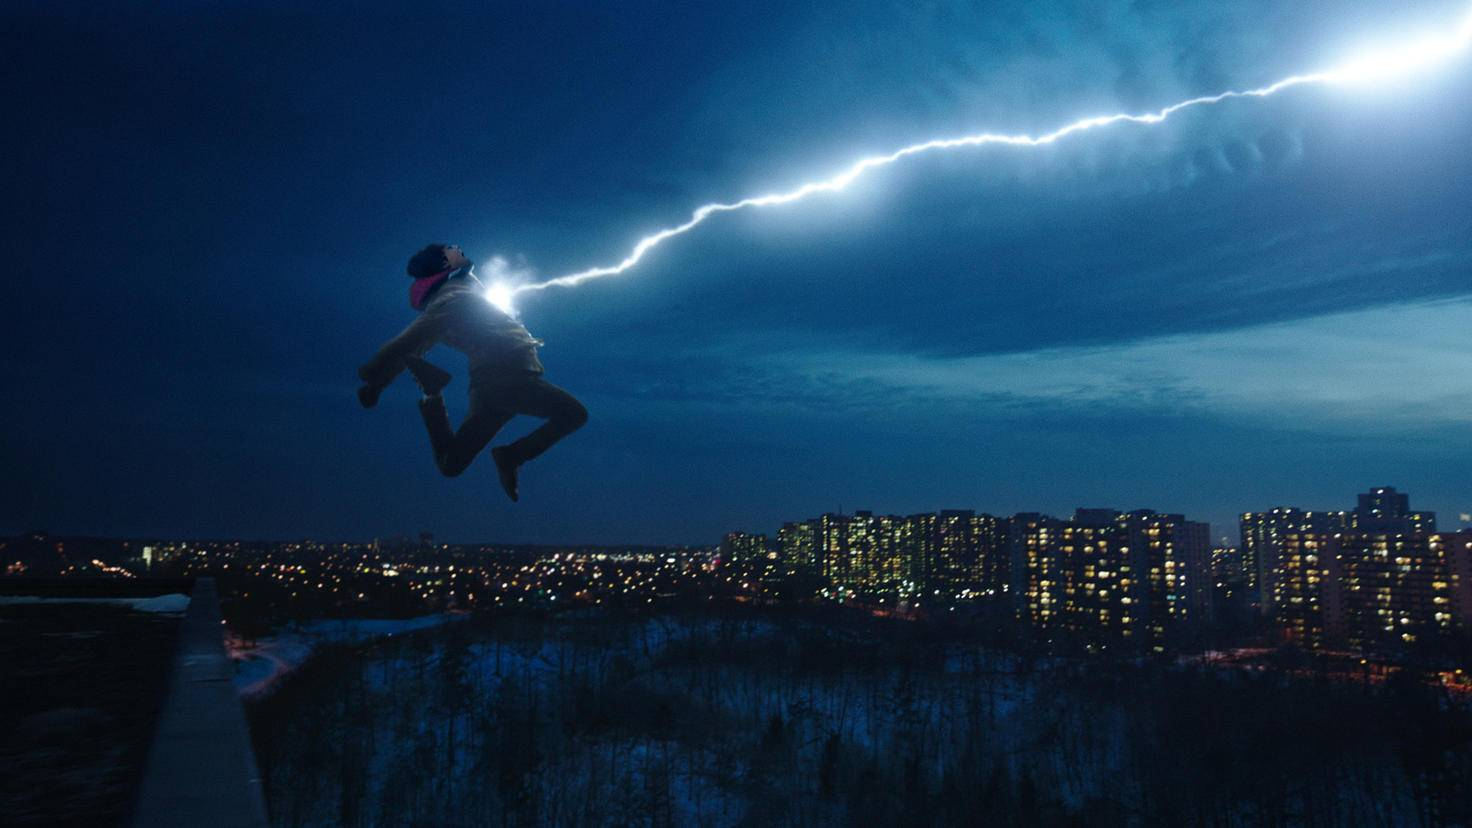 Asher Angel as Billy Batson in Shazam